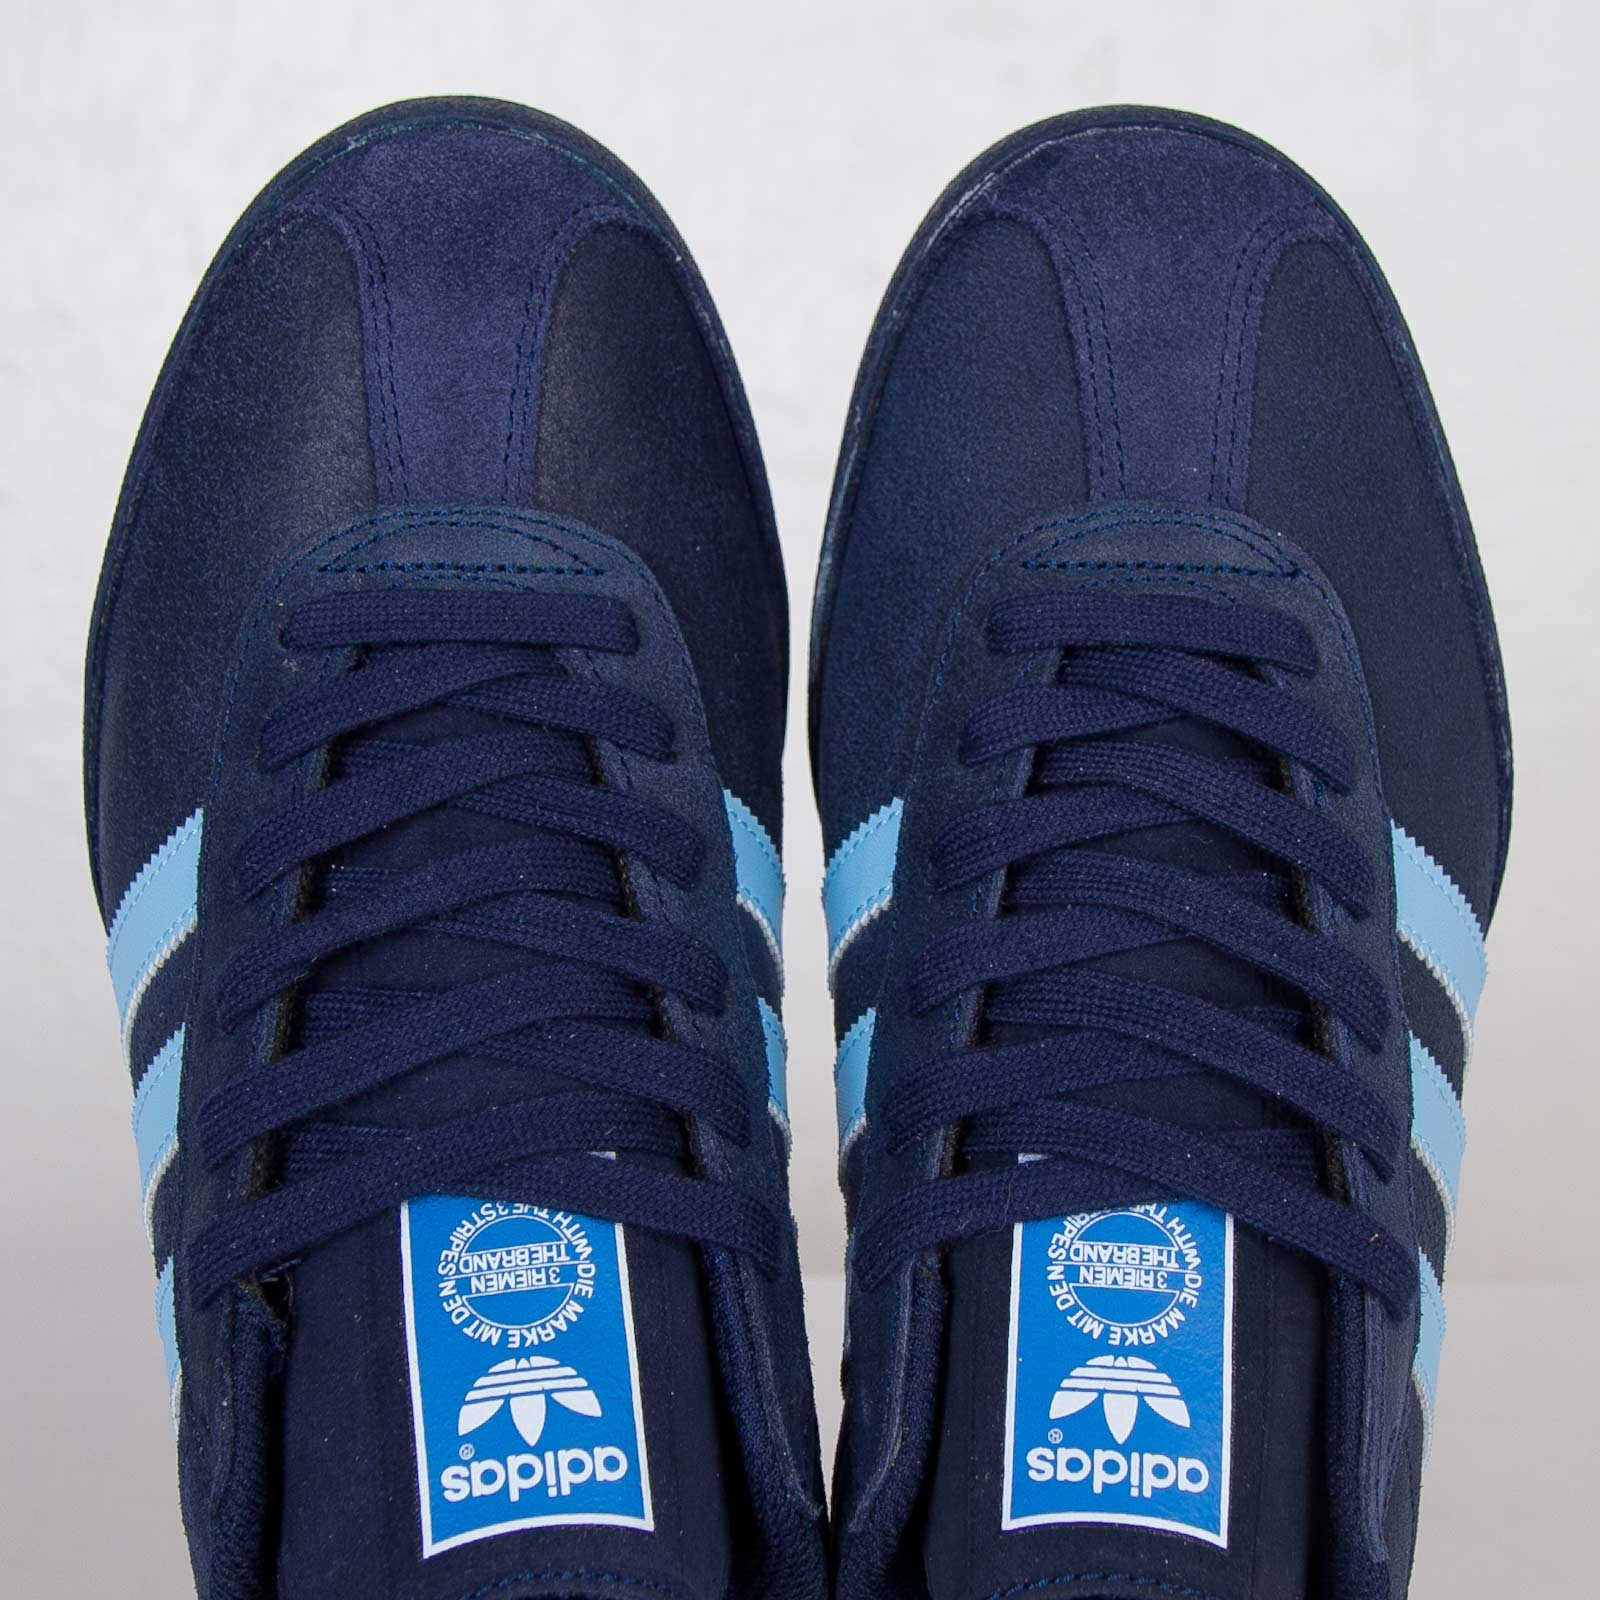 adidas Bamba D65790 Sneakersnstuff I Sneakers